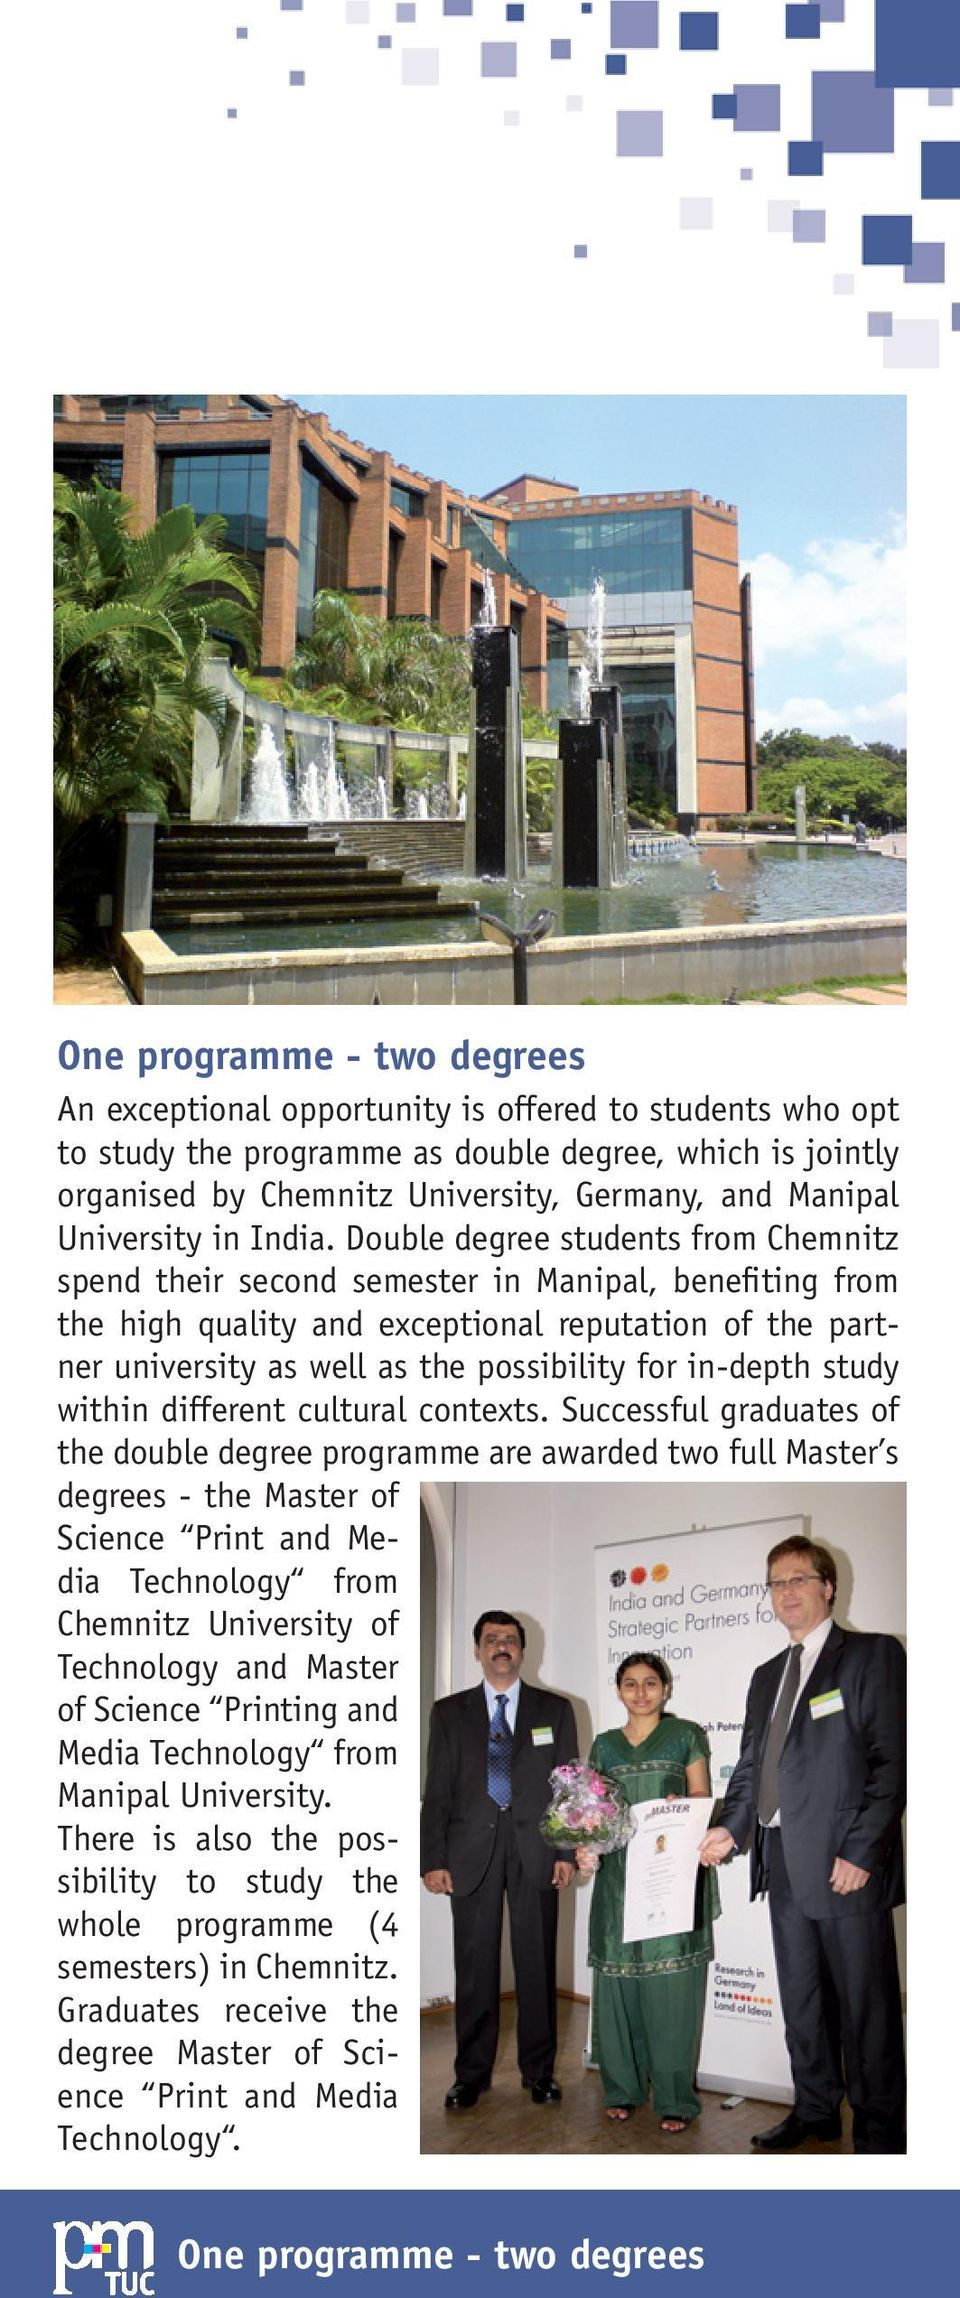 Double degree students from Chemnitz spend their second semester in Manipal, benefiting from the high quality and exceptional reputation of the partner university as well as the possibility for